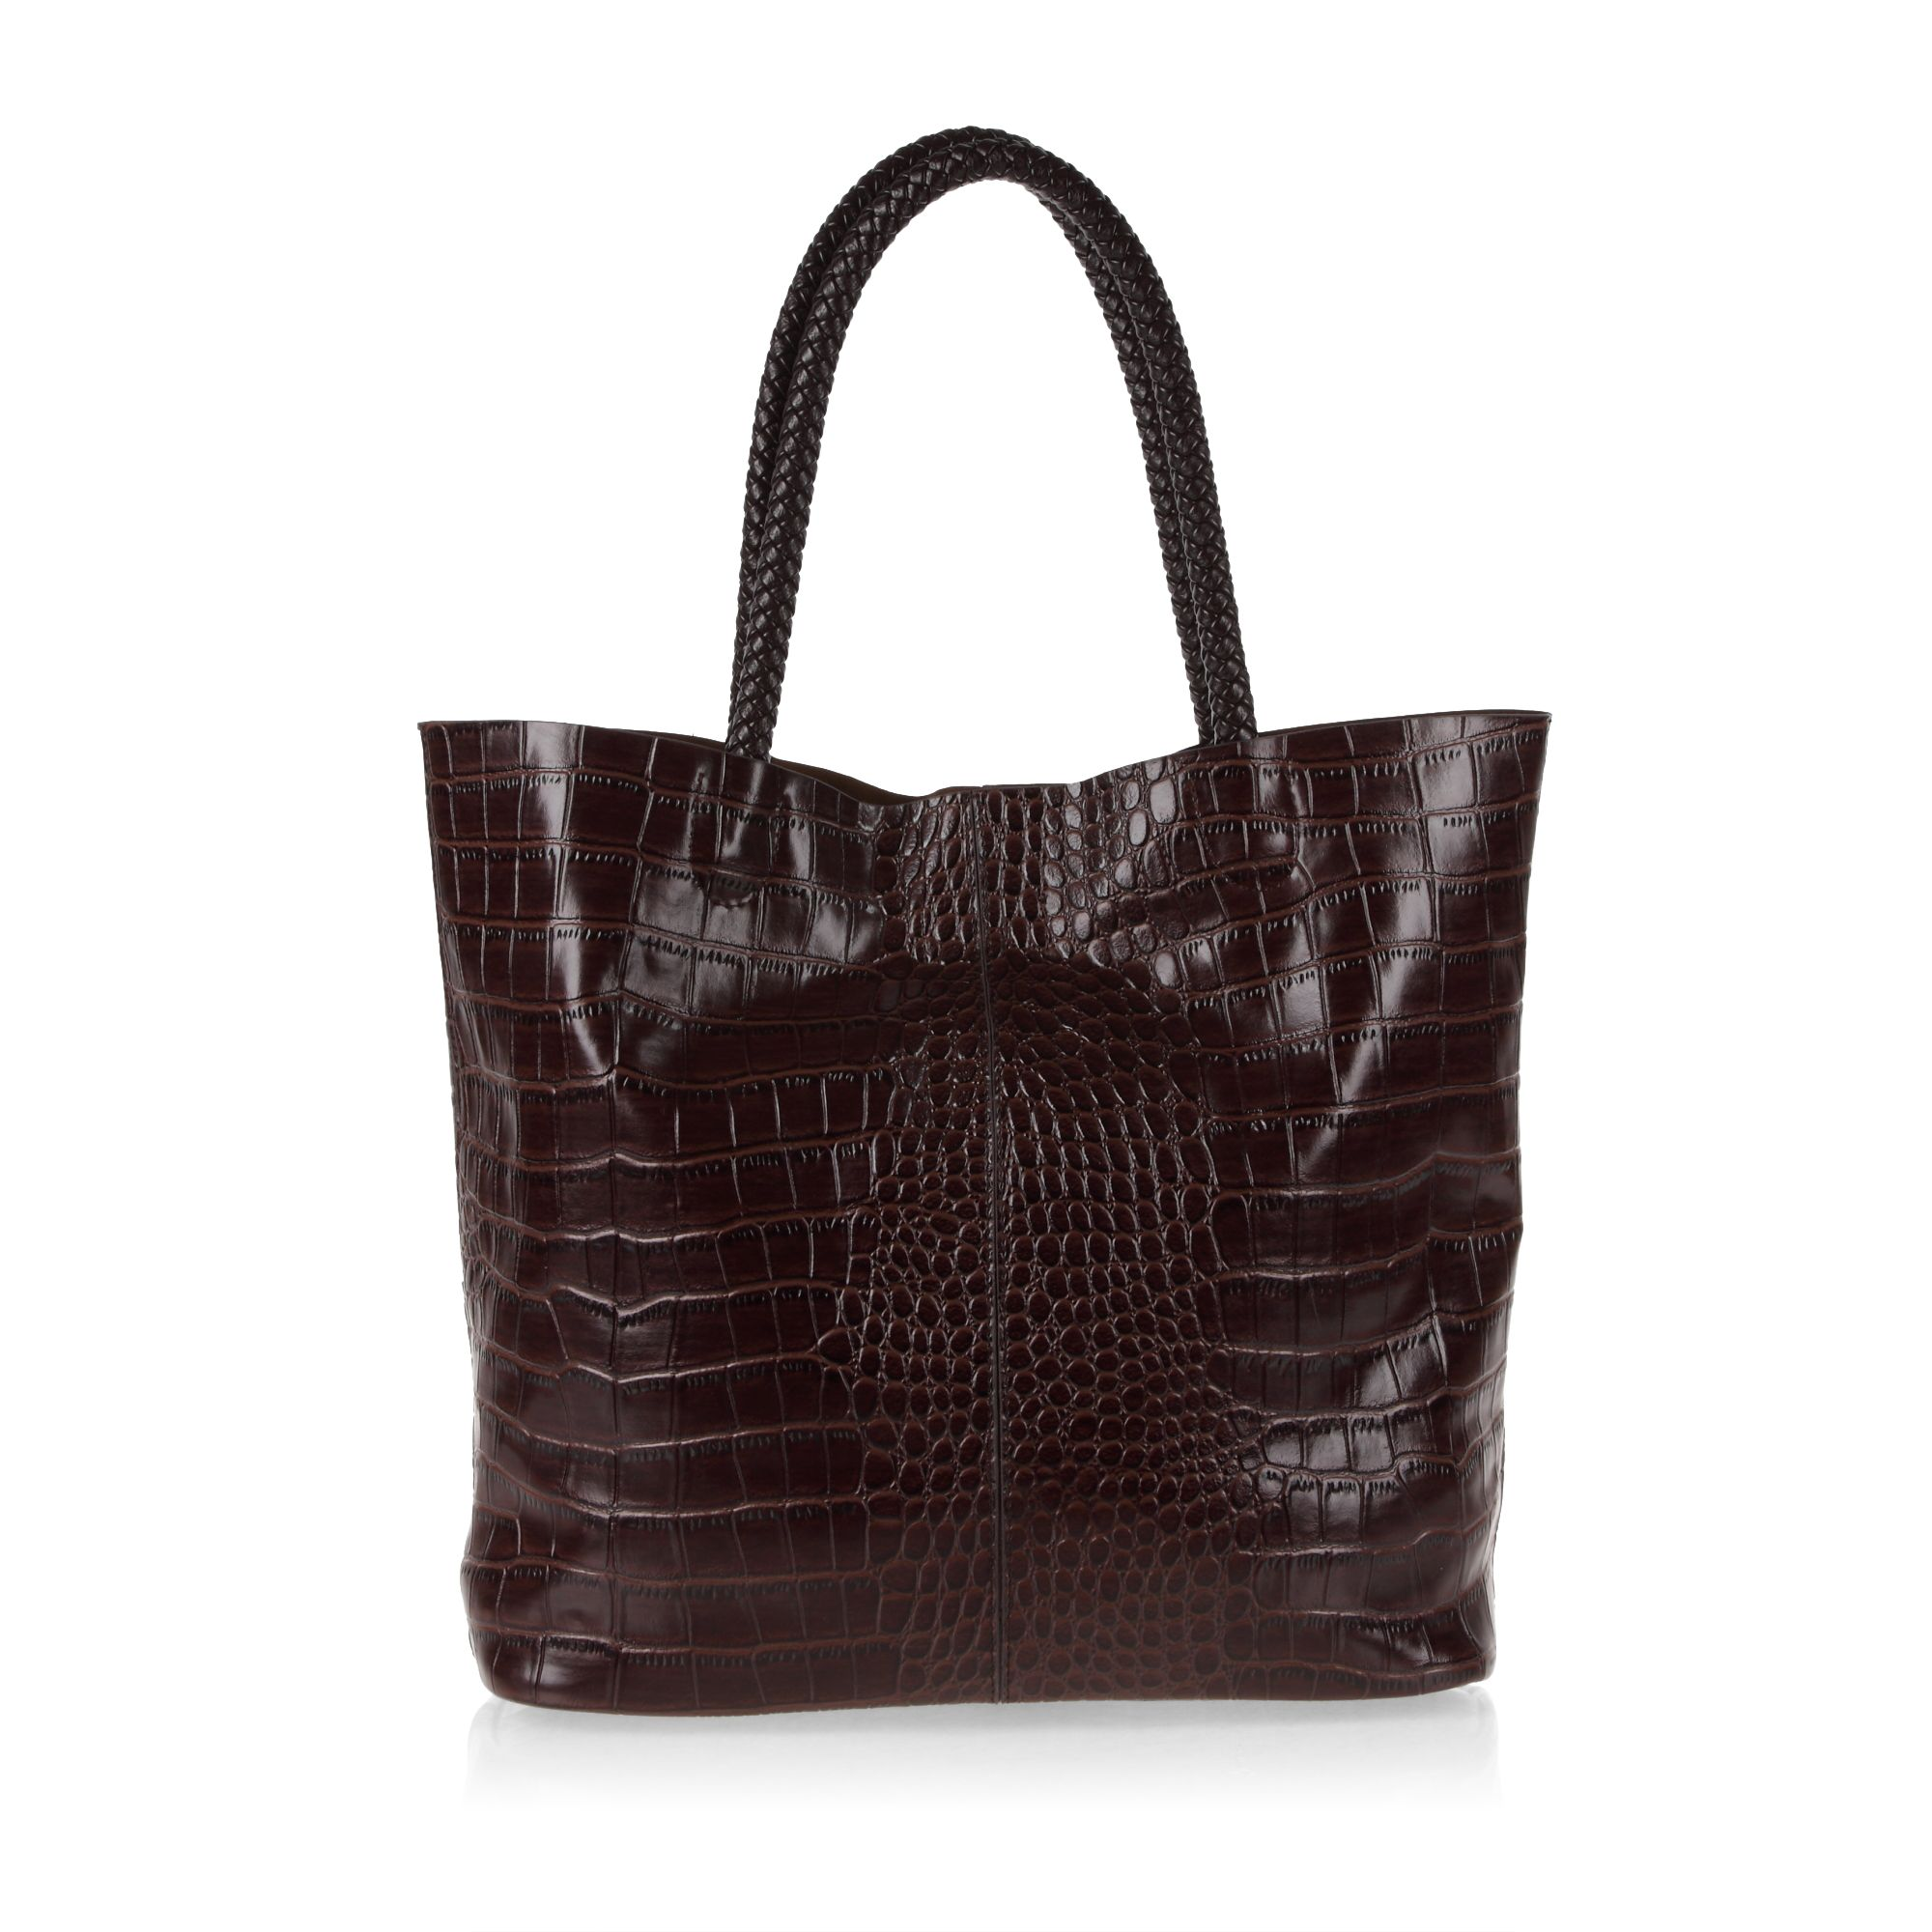 Croc print tote bag with detachable pouch